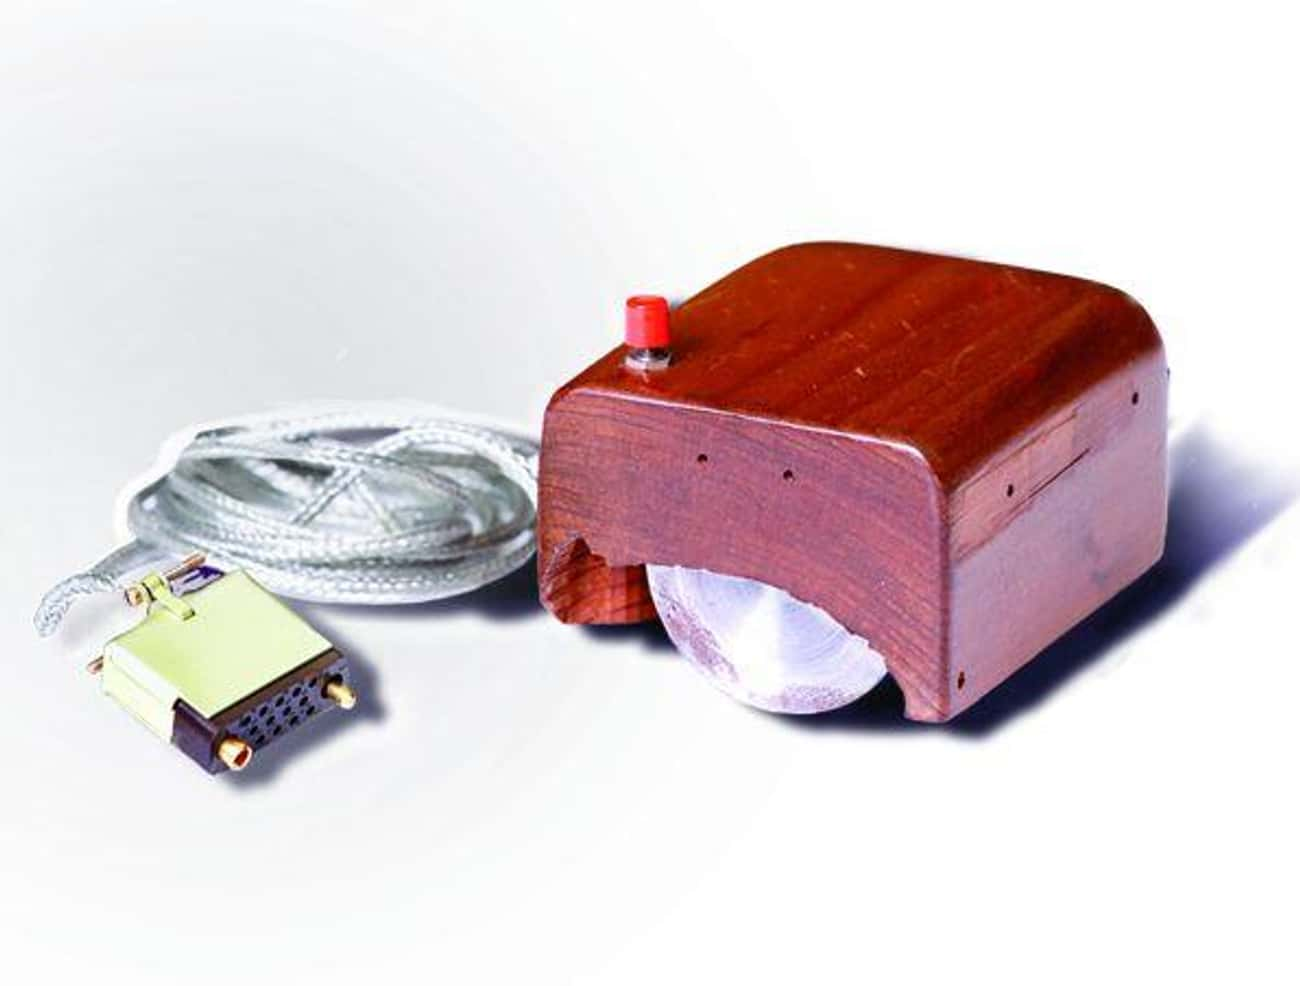 Computer Mouse Invented By Dou is listed (or ranked) 2 on the list Photos Of 1960s Inventions When They Were New And Cool